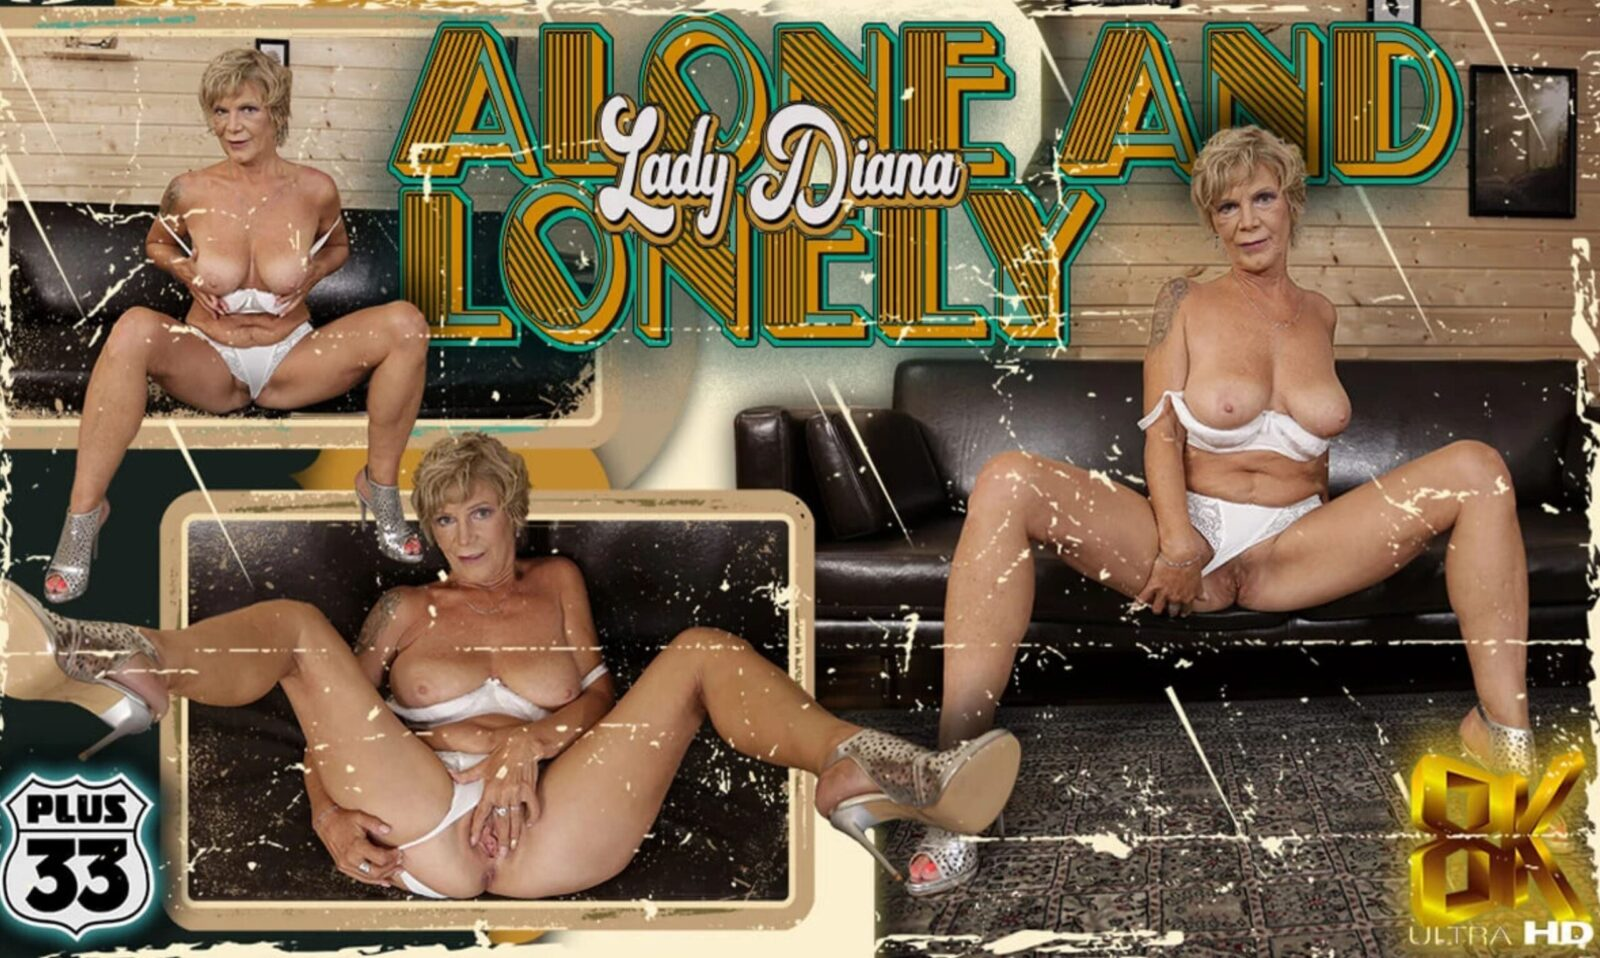 Plus33 - Alone and Lonely - Lady Diana poster 8K granny porn